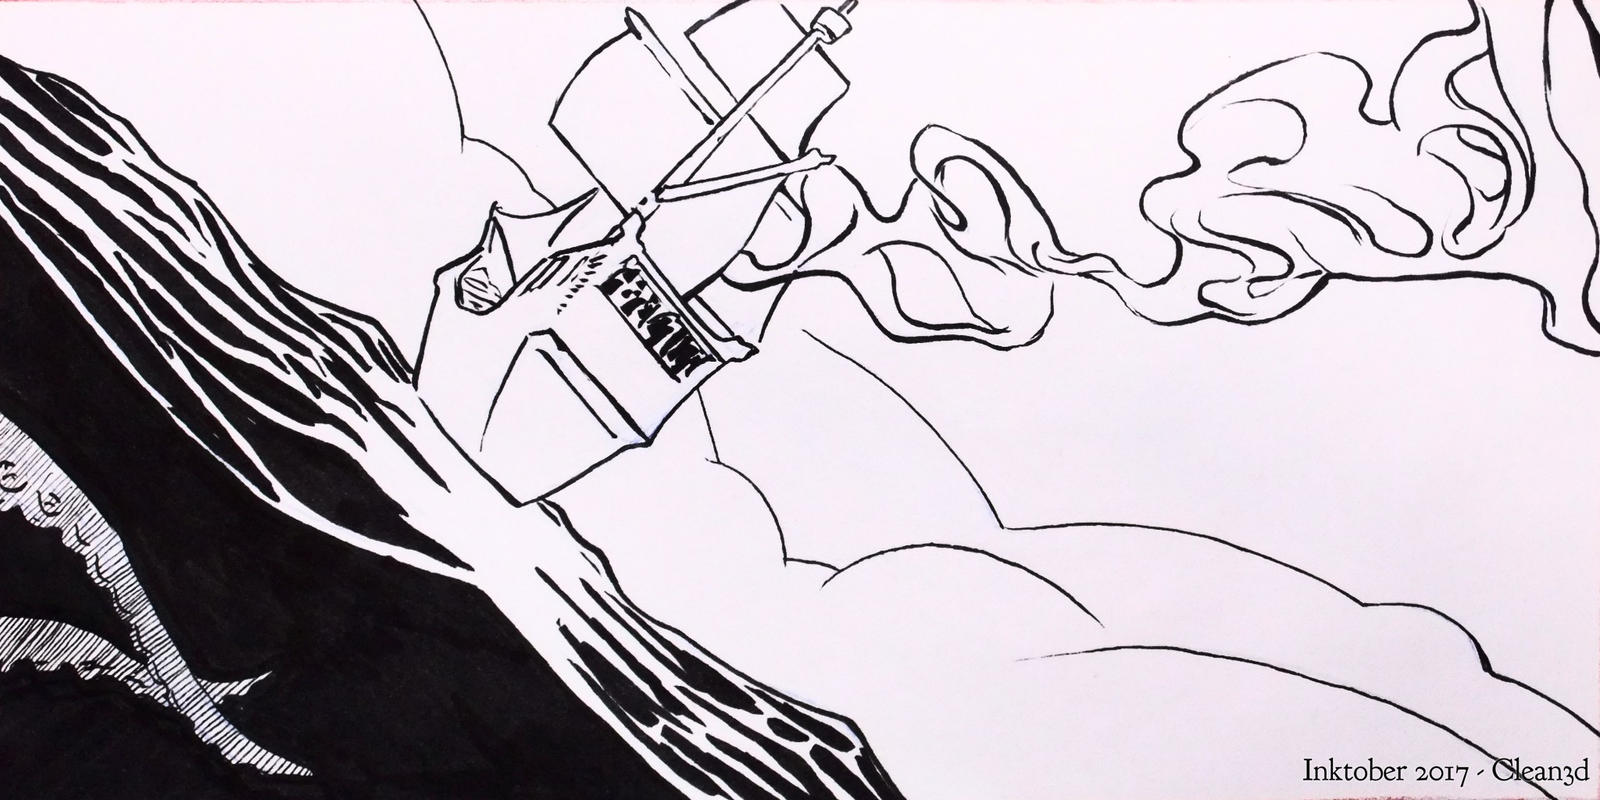 No Fun Hill - 20 by Clean3d